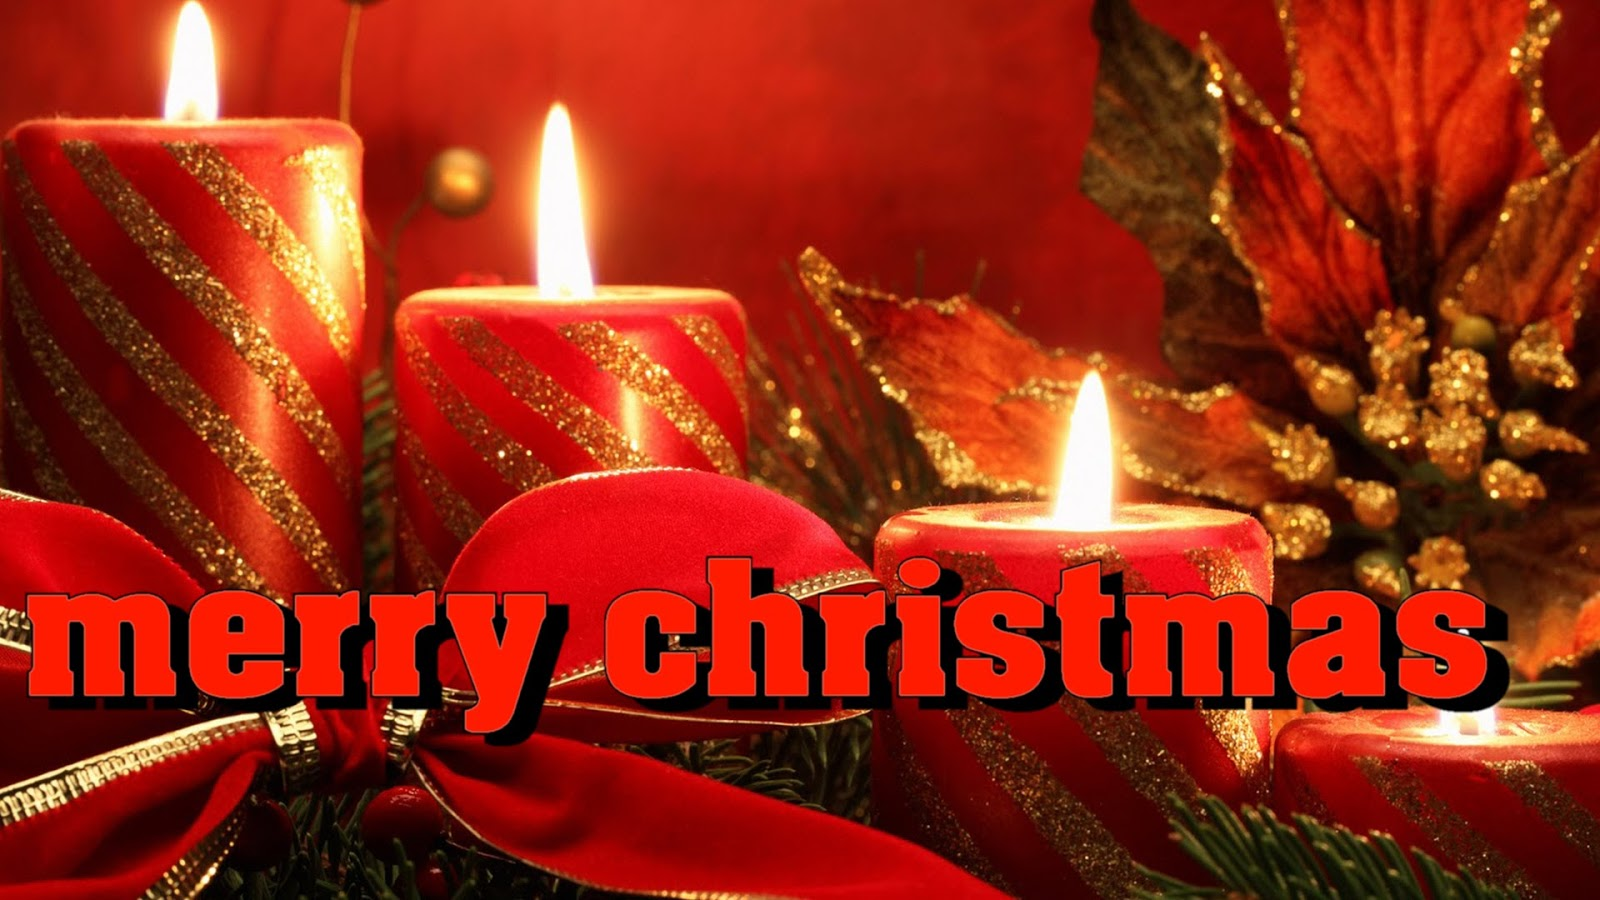 merry christmas 2016 hd images | merry christmas 2016 images, wishes